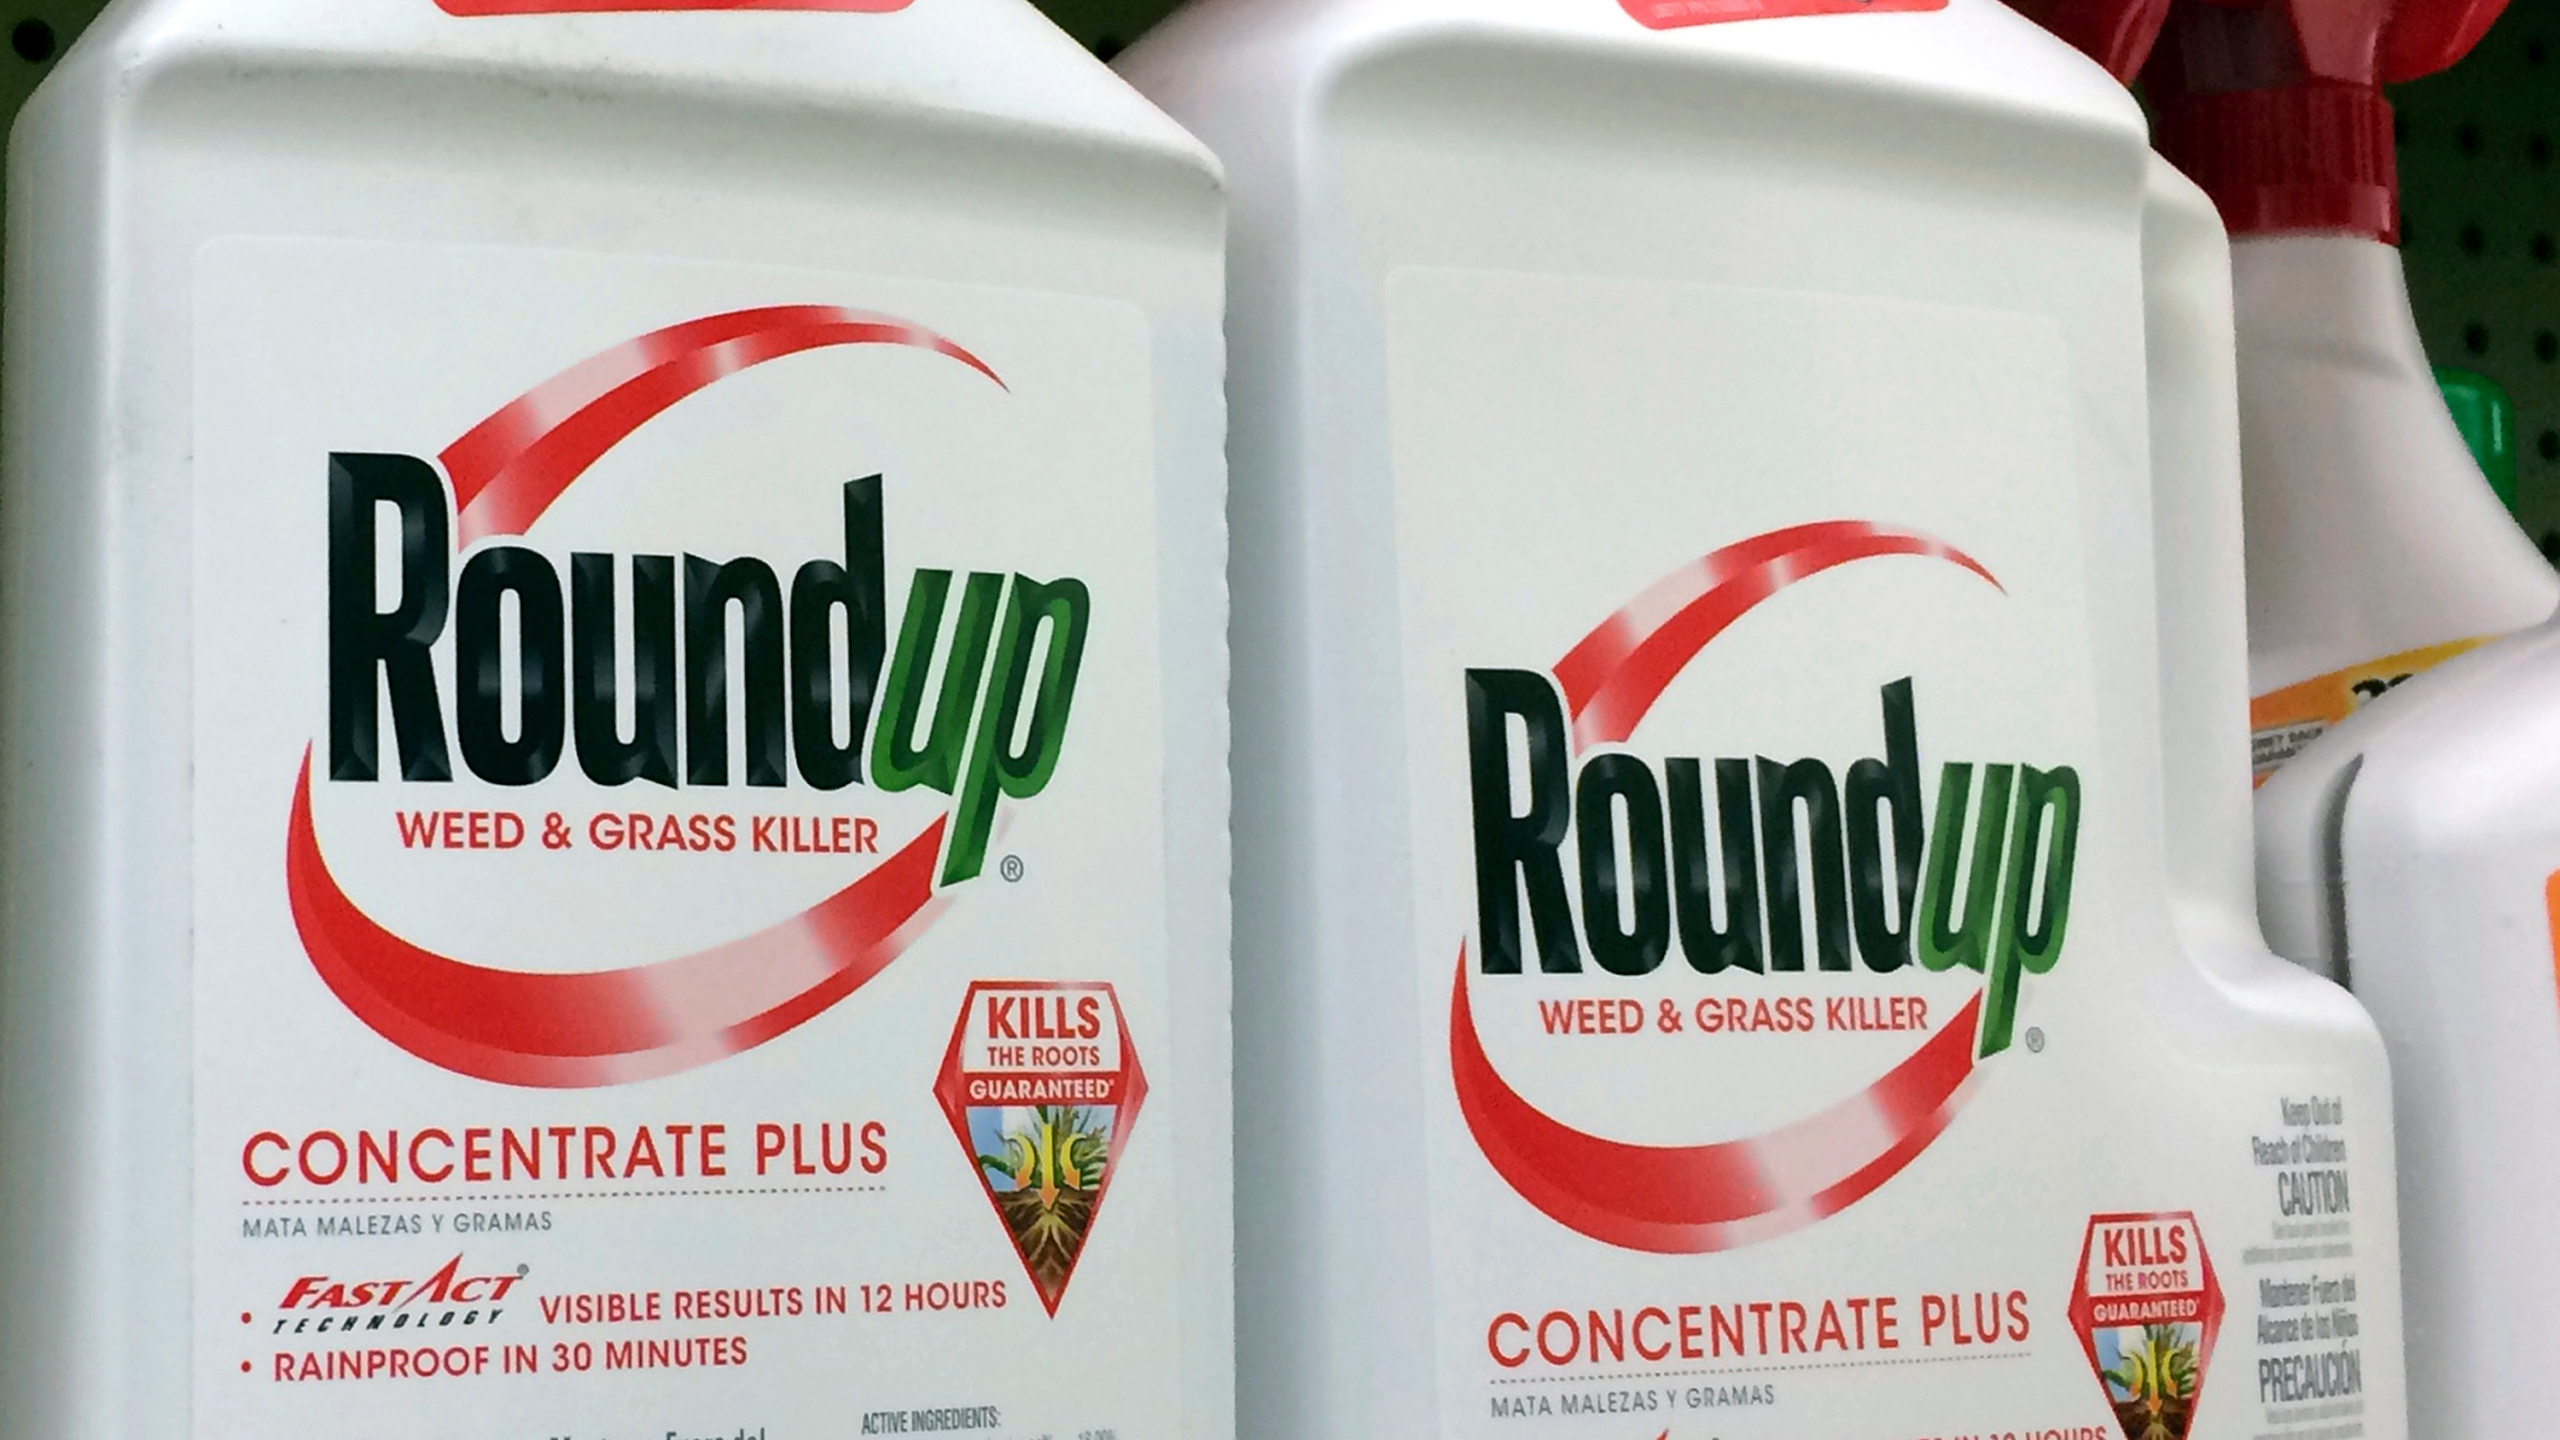 Roundup_Weed_Killer_Cancer_14698-159532.jpg69067959